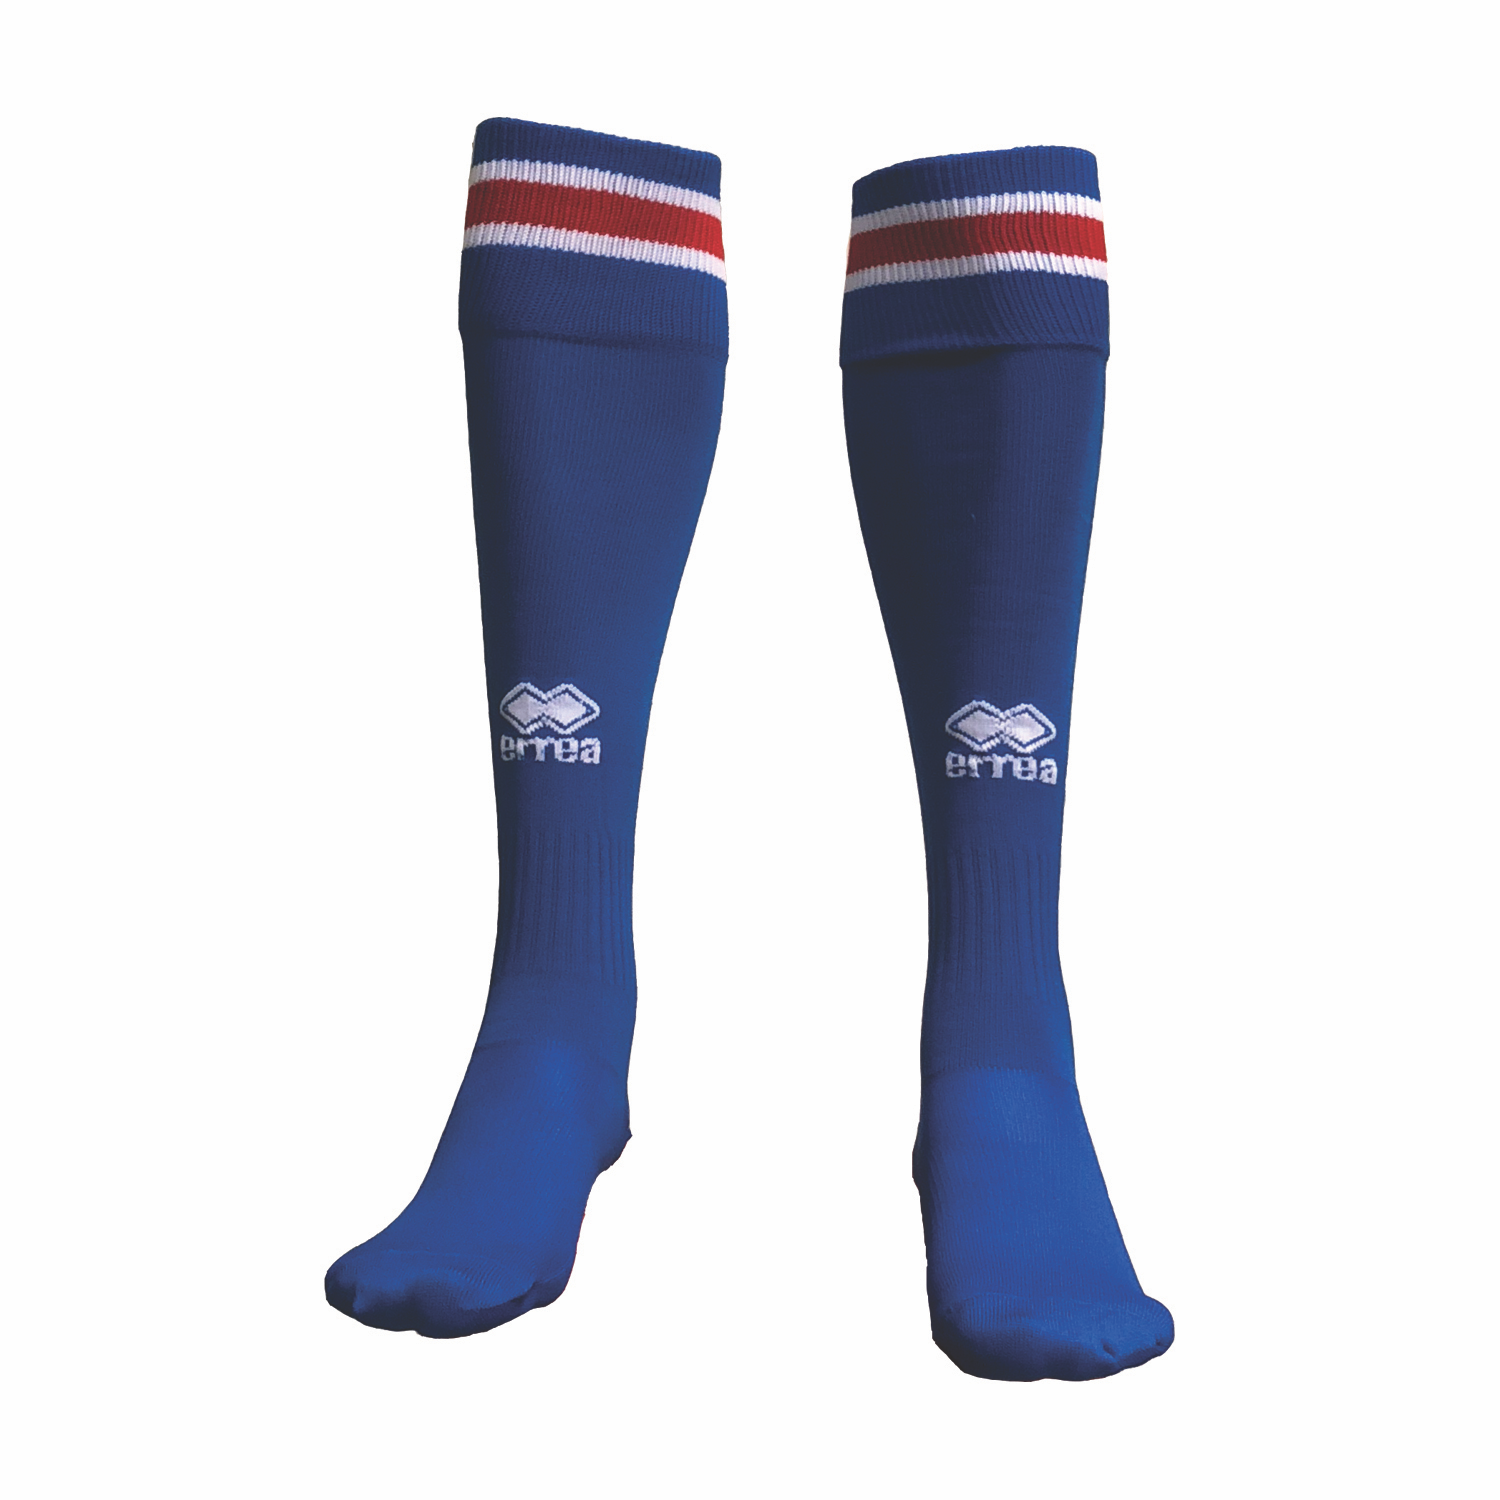 KSÍ - Iceland National Football Team Home Socks 2018 - 2020